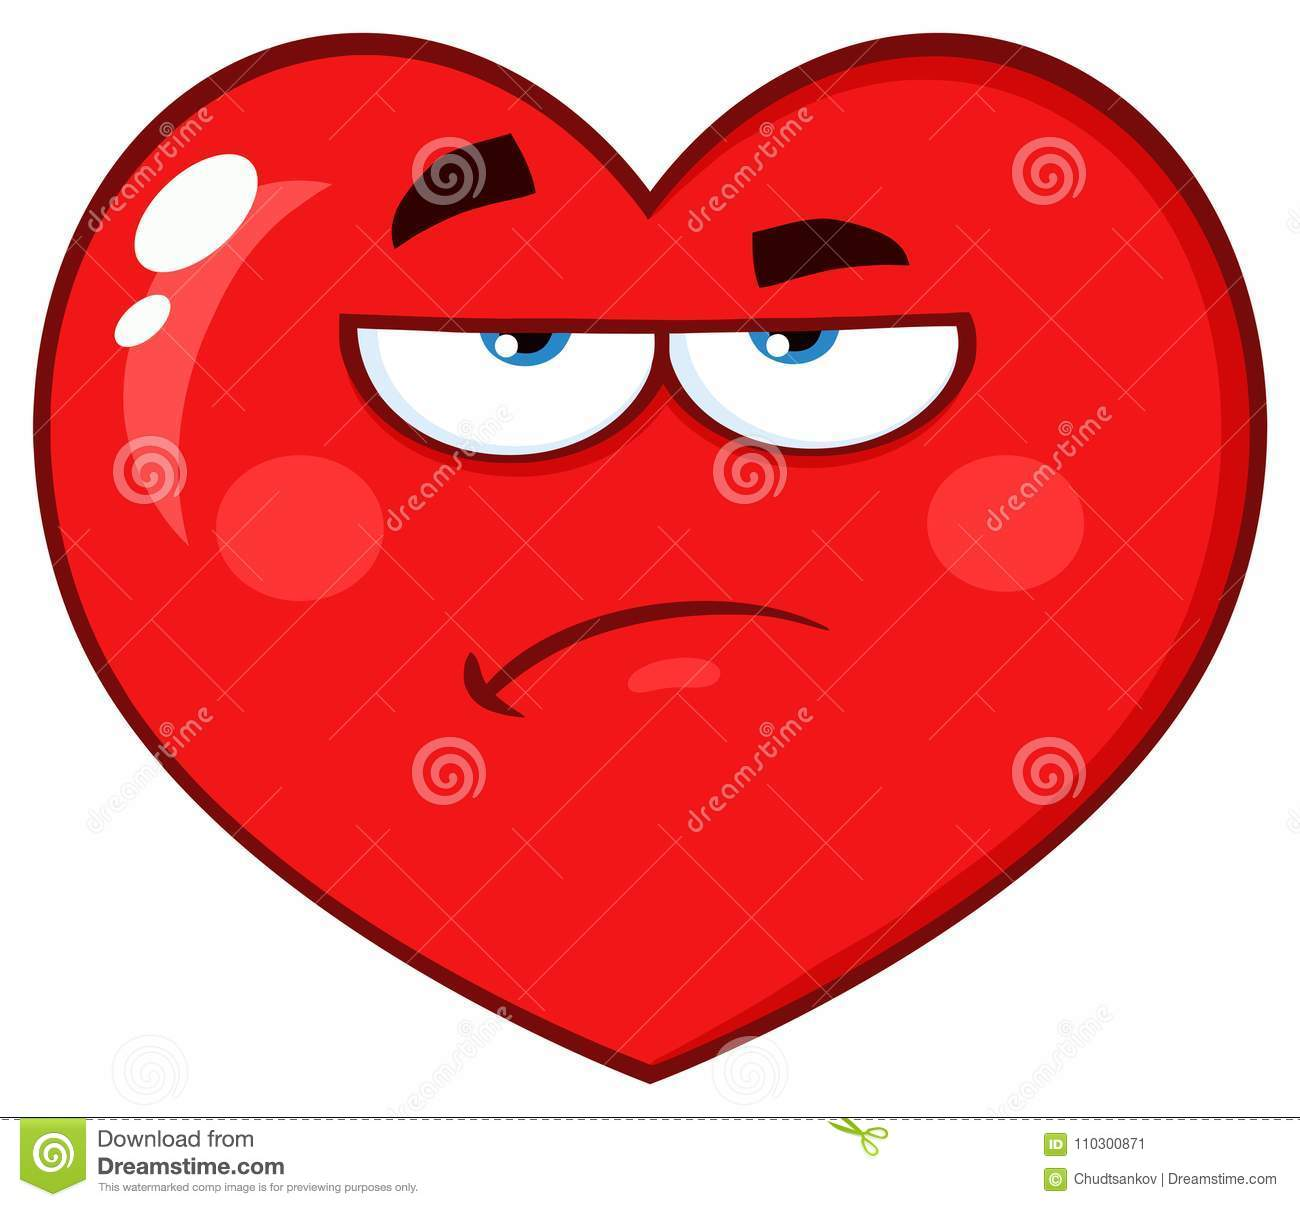 Annoyed Red Heart Cartoon Emoji Face Character With Grumpy